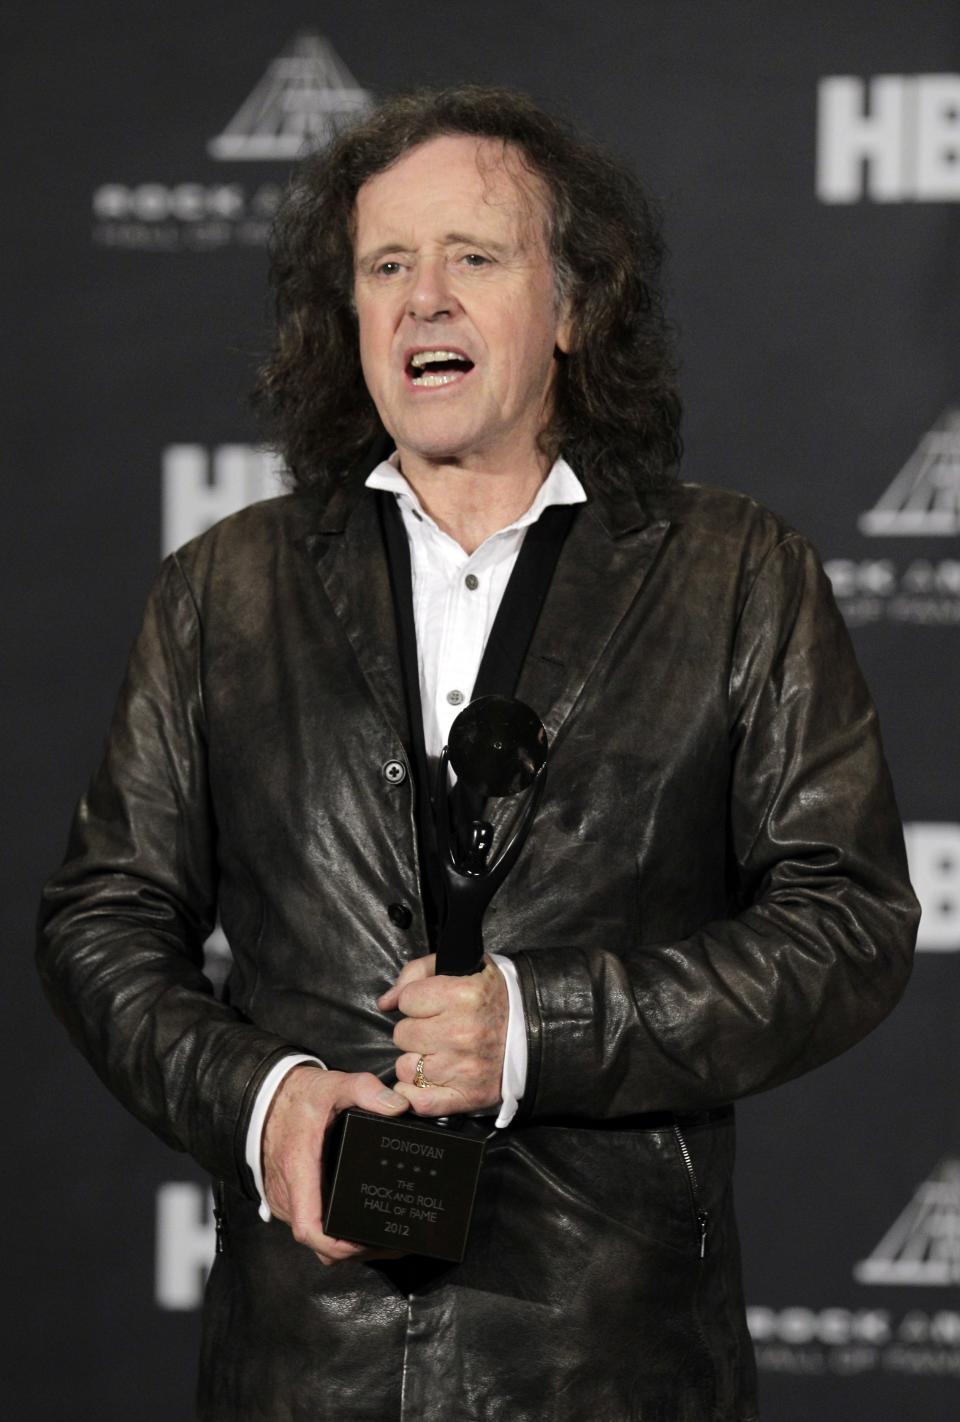 Donovan Leitch appears in the press room after induction into the Rock and Roll Hall of Fame  Rock and Roll Hall of Fame Friday, April 13, 2012, in Cleveland. (AP Photo/Amy Sancetta)